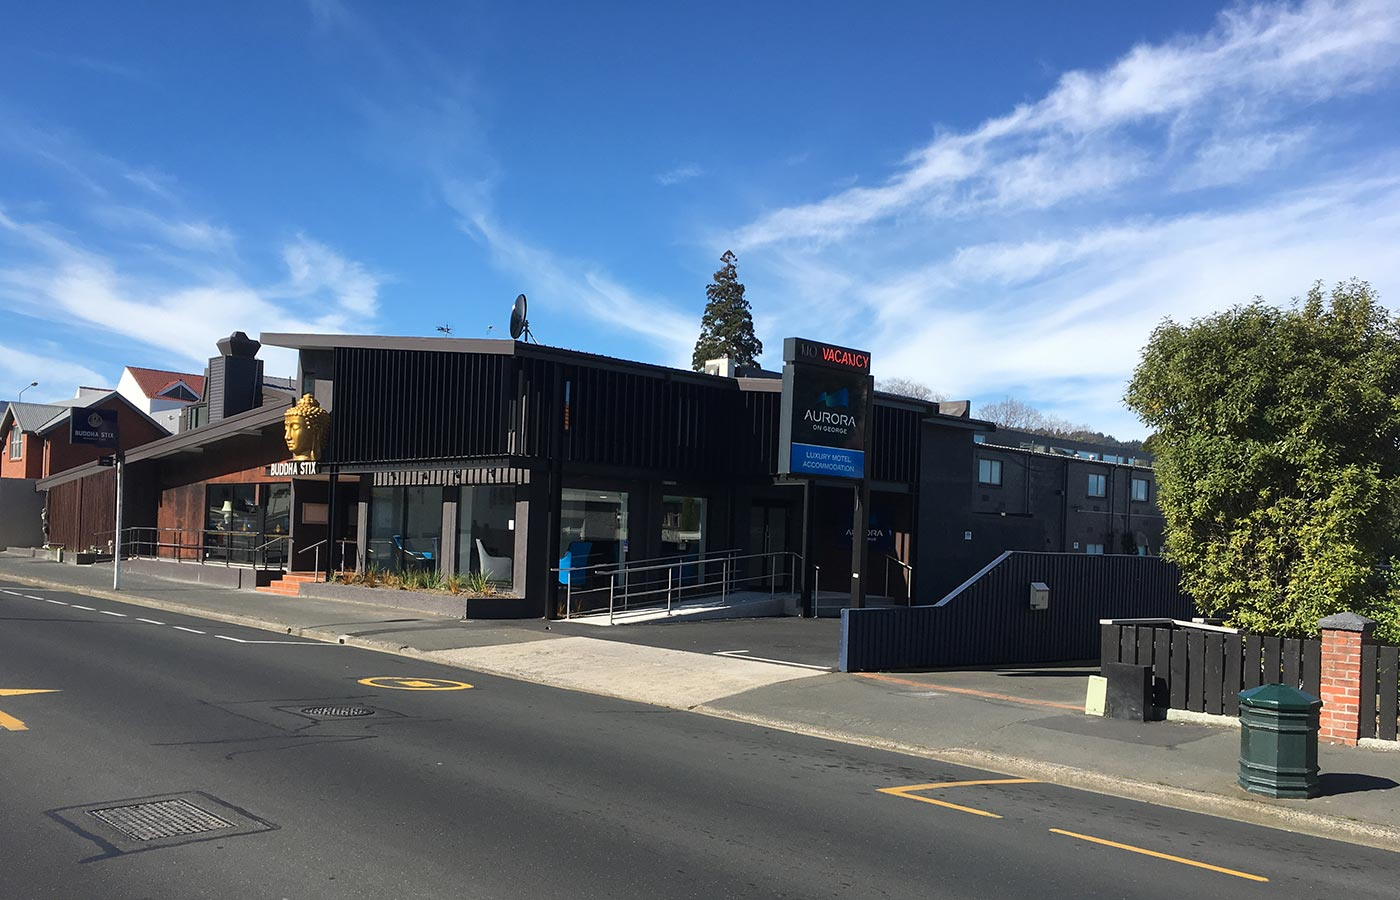 Aurora on George - Dunedin's newest landmark